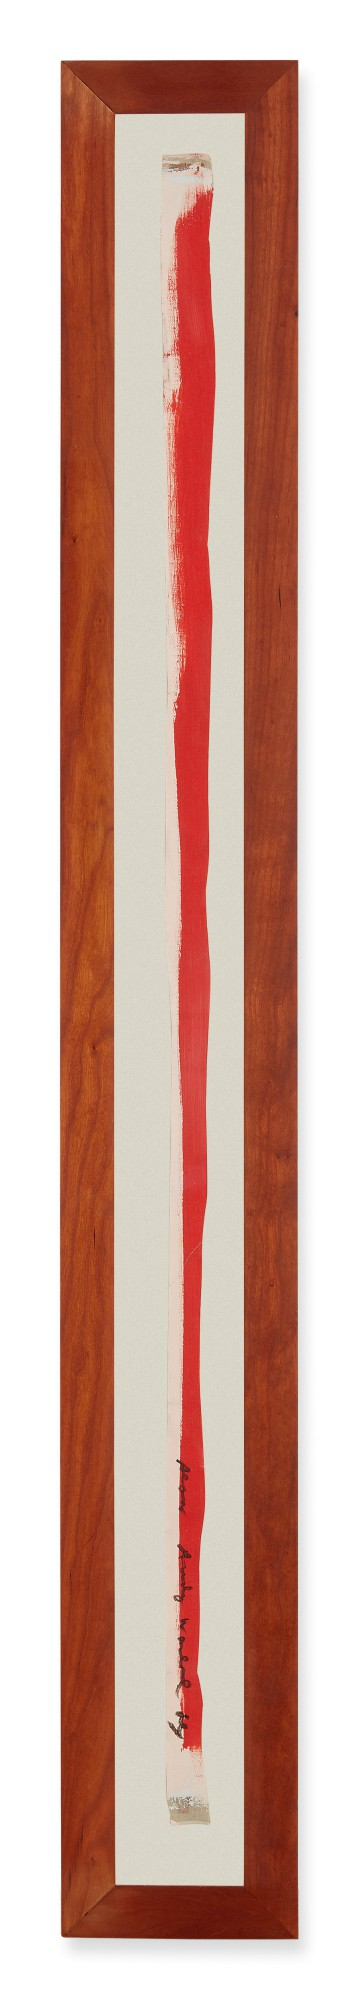 View full screen - View 1 of Lot 1056. ANDY WARHOL | UNTITLED (TIE).